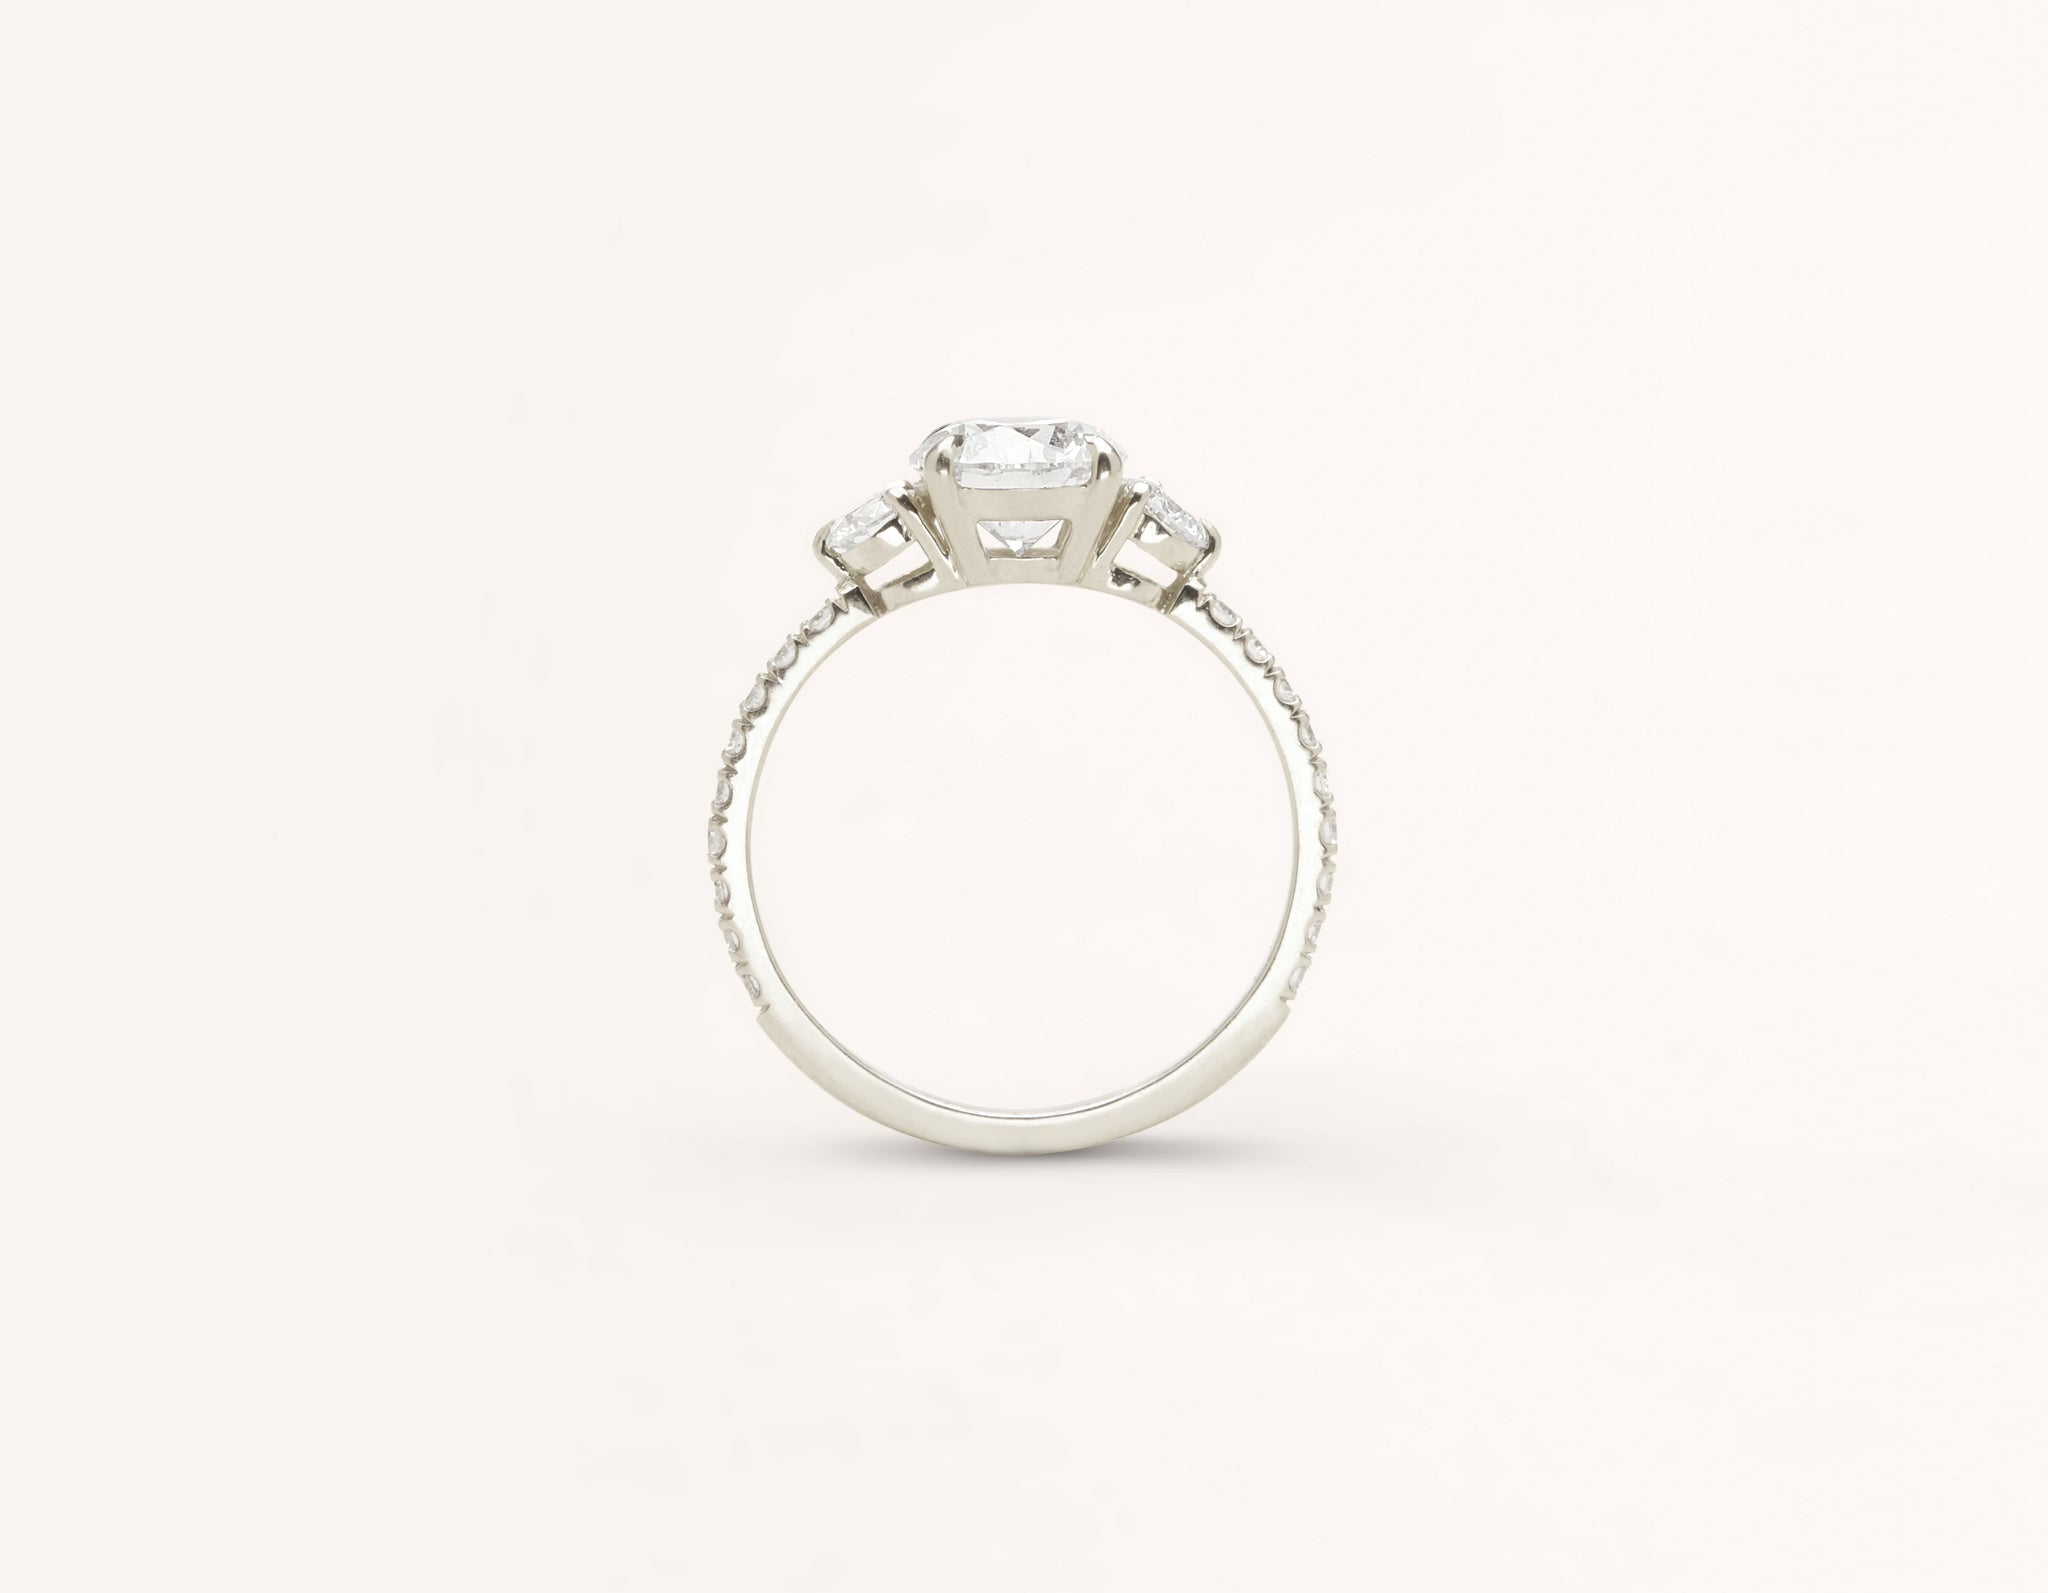 Vrai and Oro classic The Three Stone diamond pave engagement ring 18k solid white gold sustainable jewelry